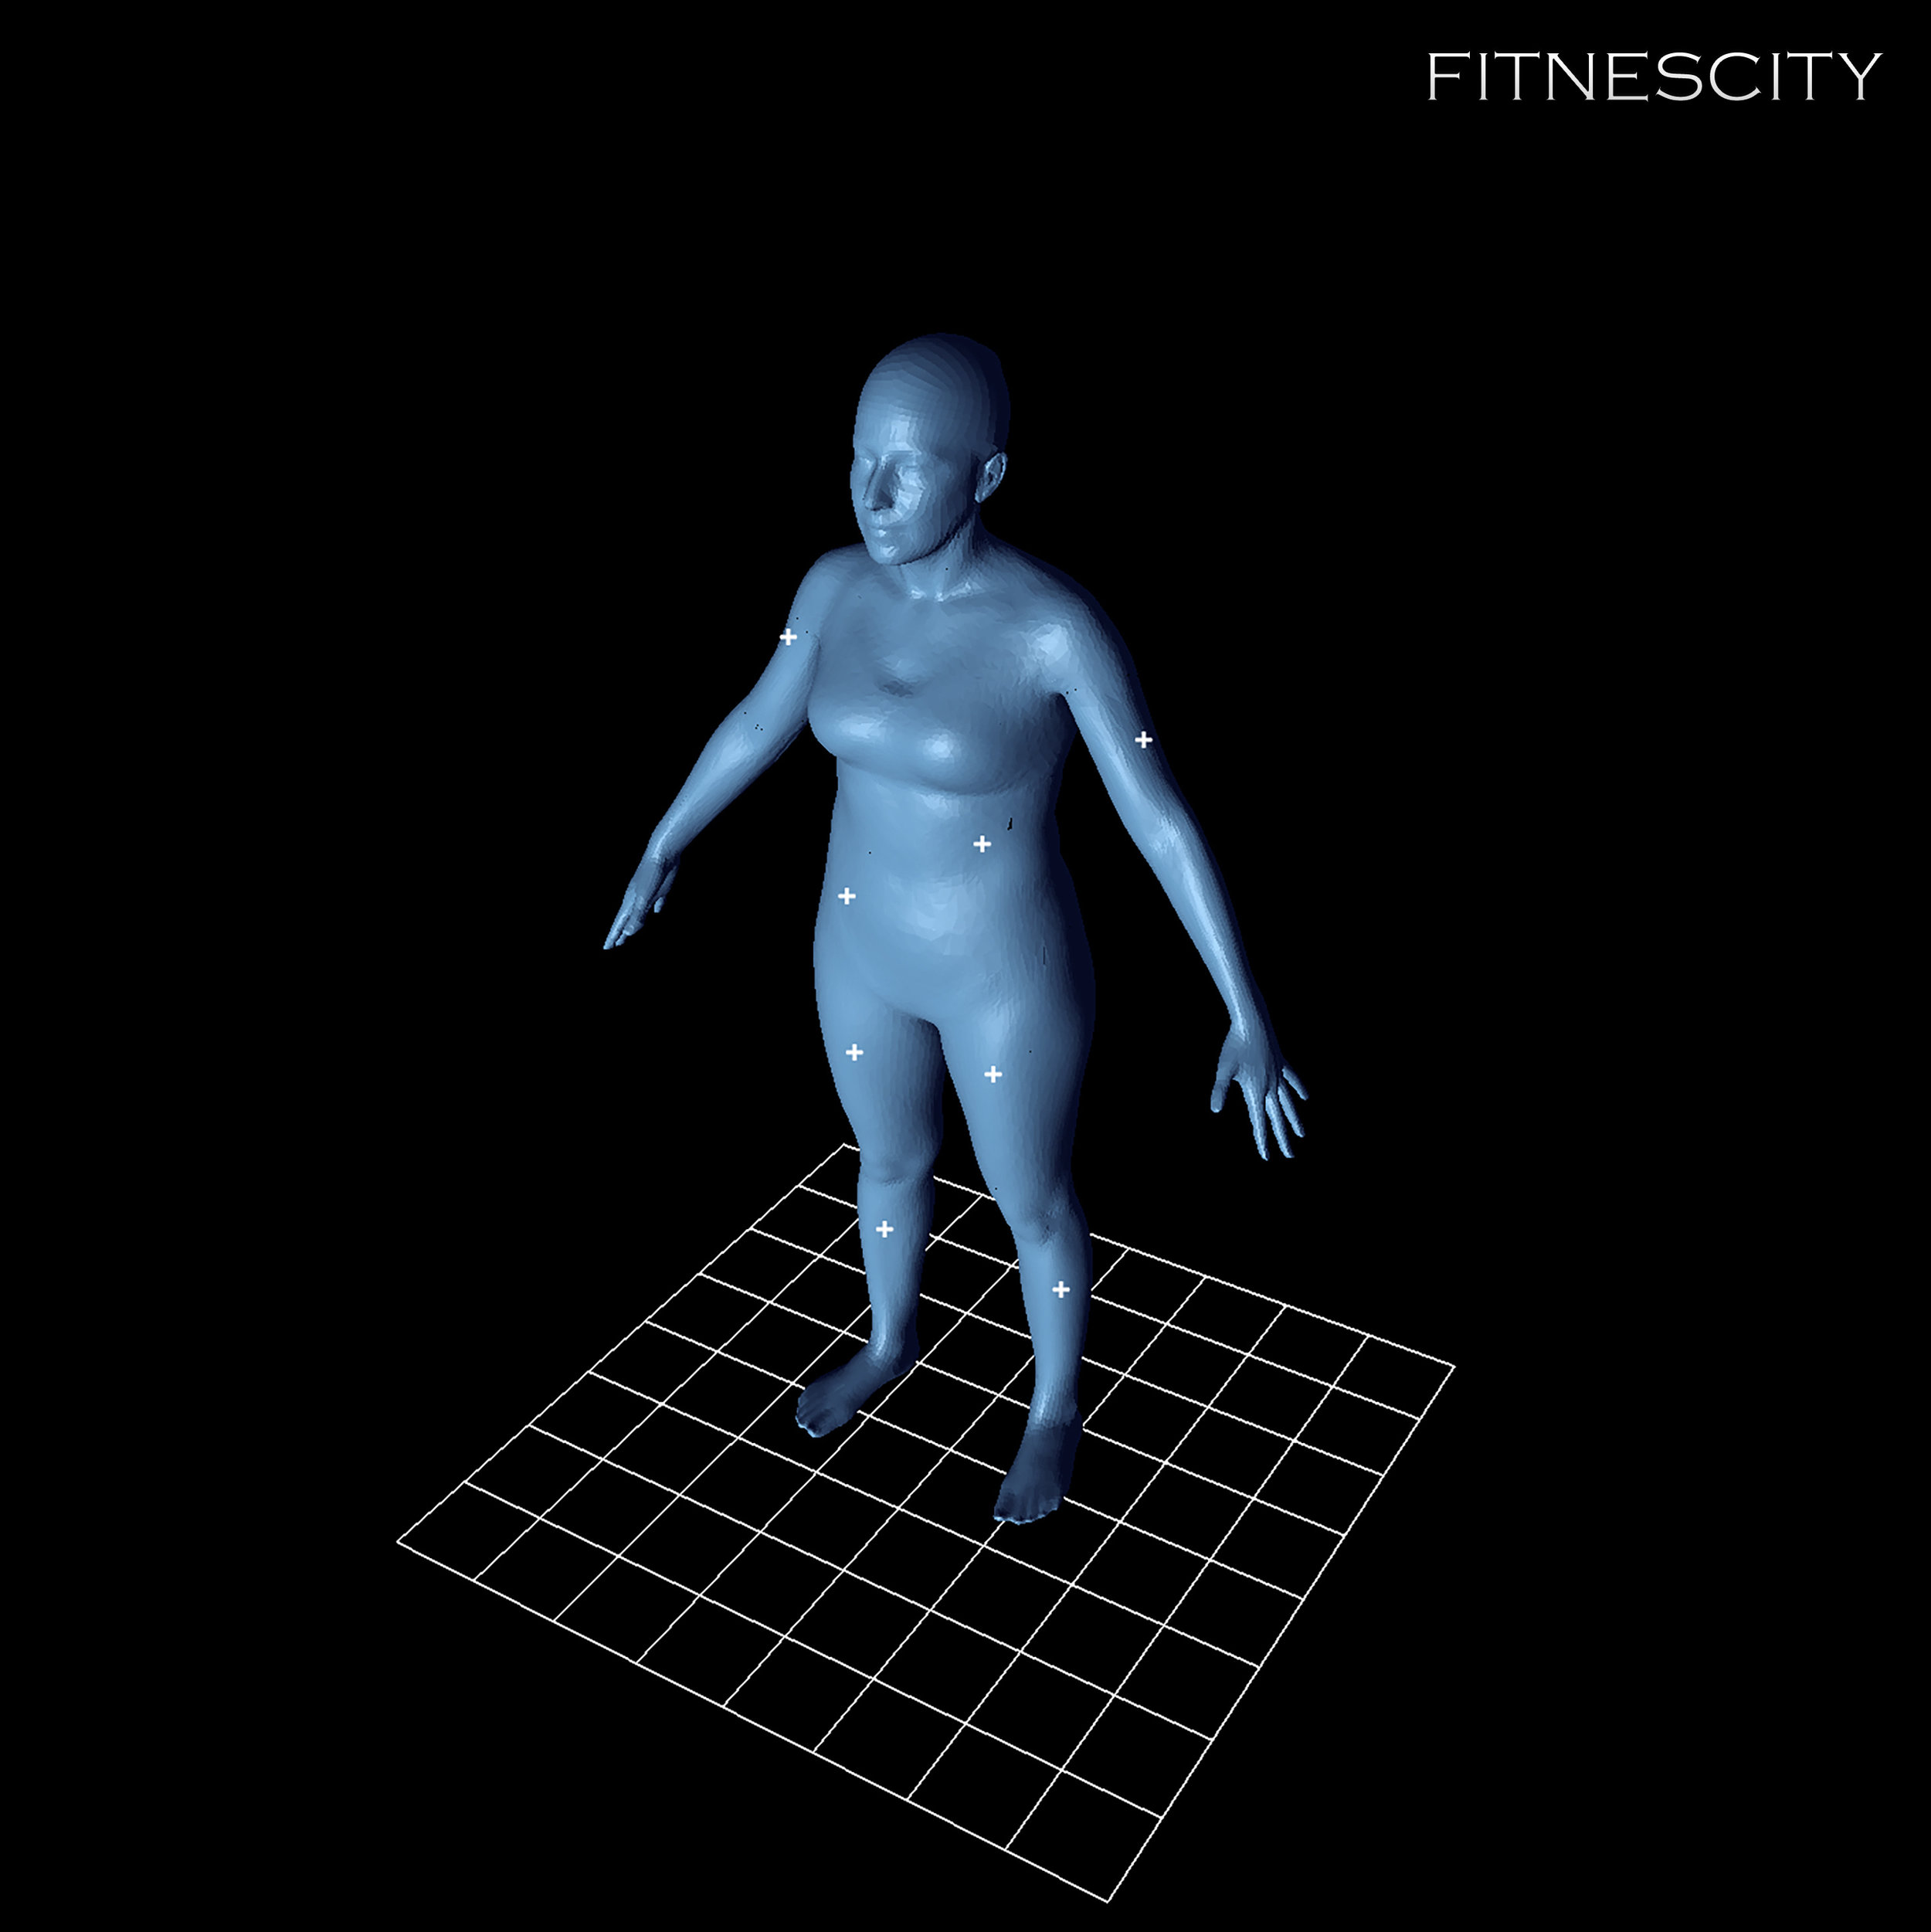 3D Body Model of an Individual with a BMI of 22.